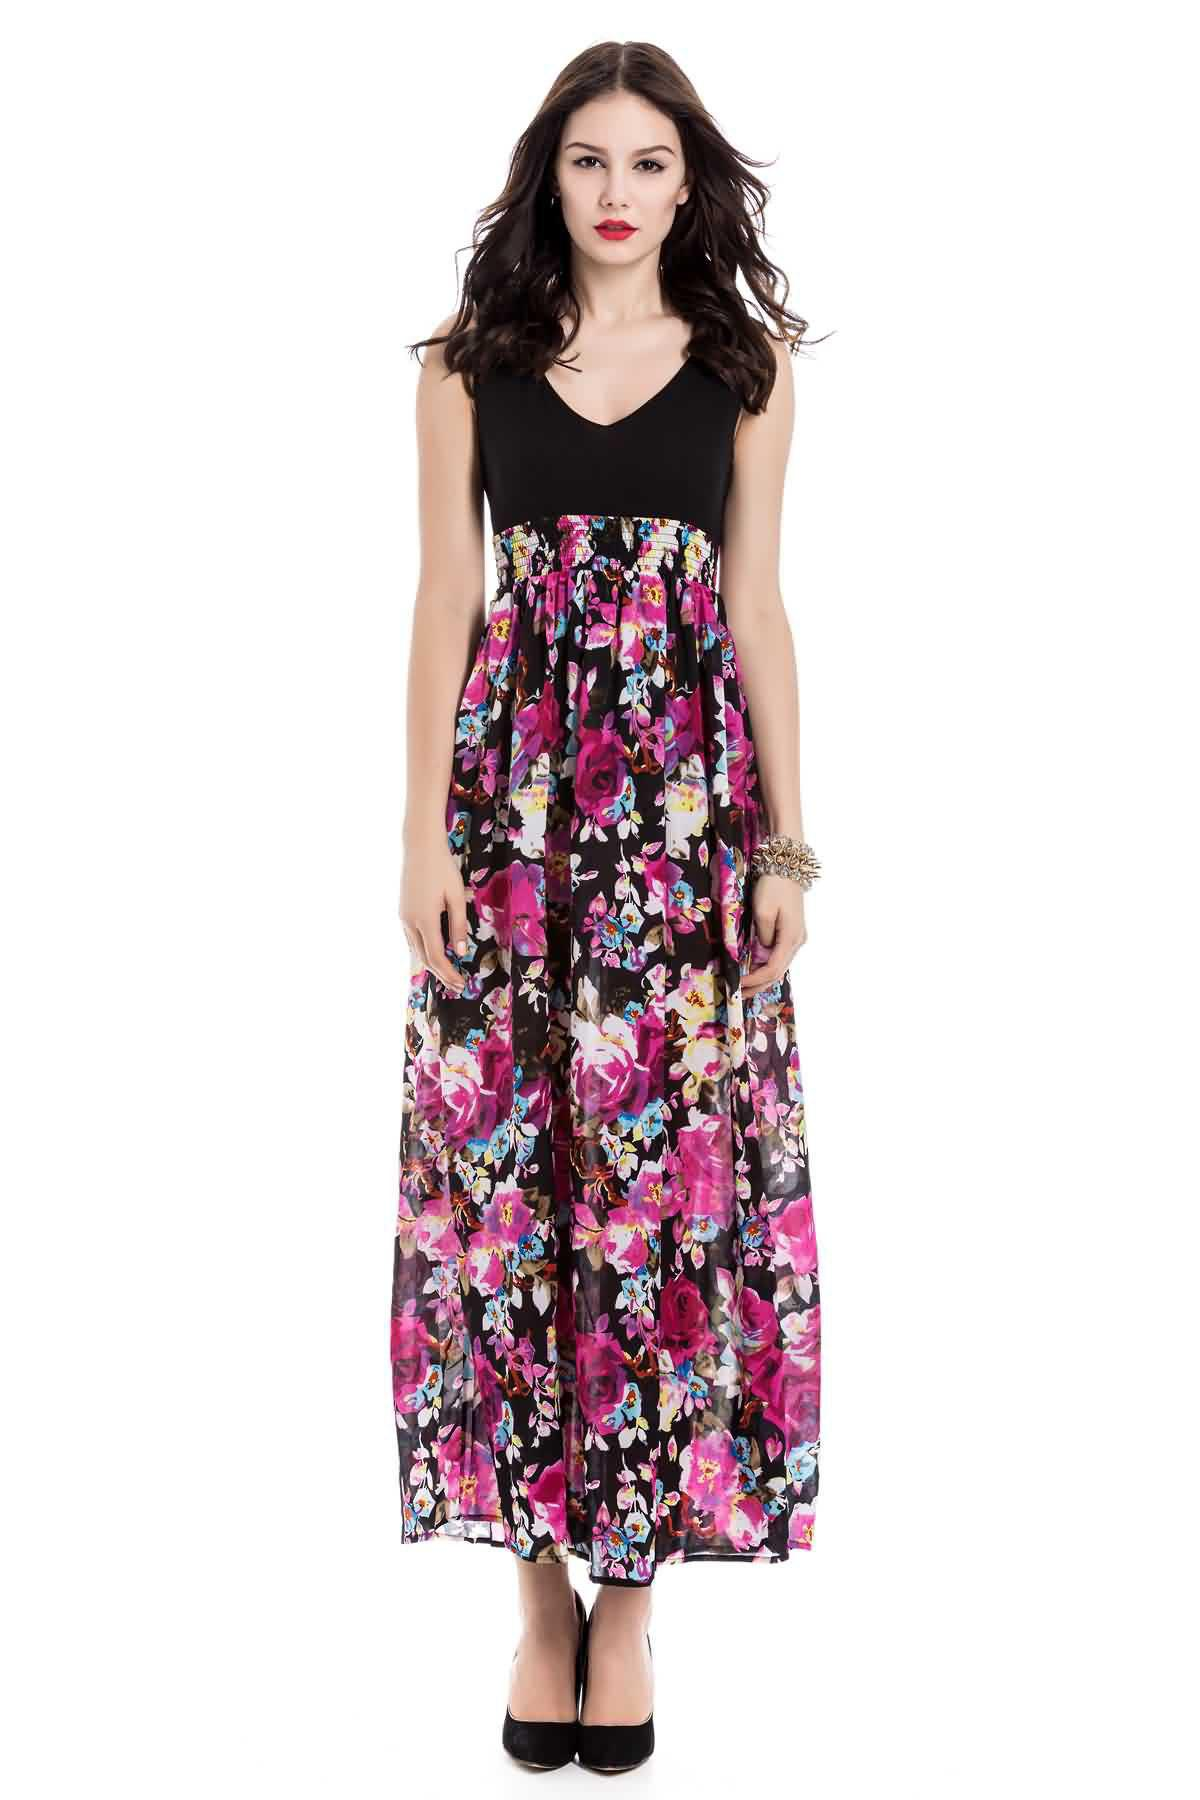 Bohemia Floral Printn Plunging Neckline Sleeveless Dress For Women - COLORMIX S